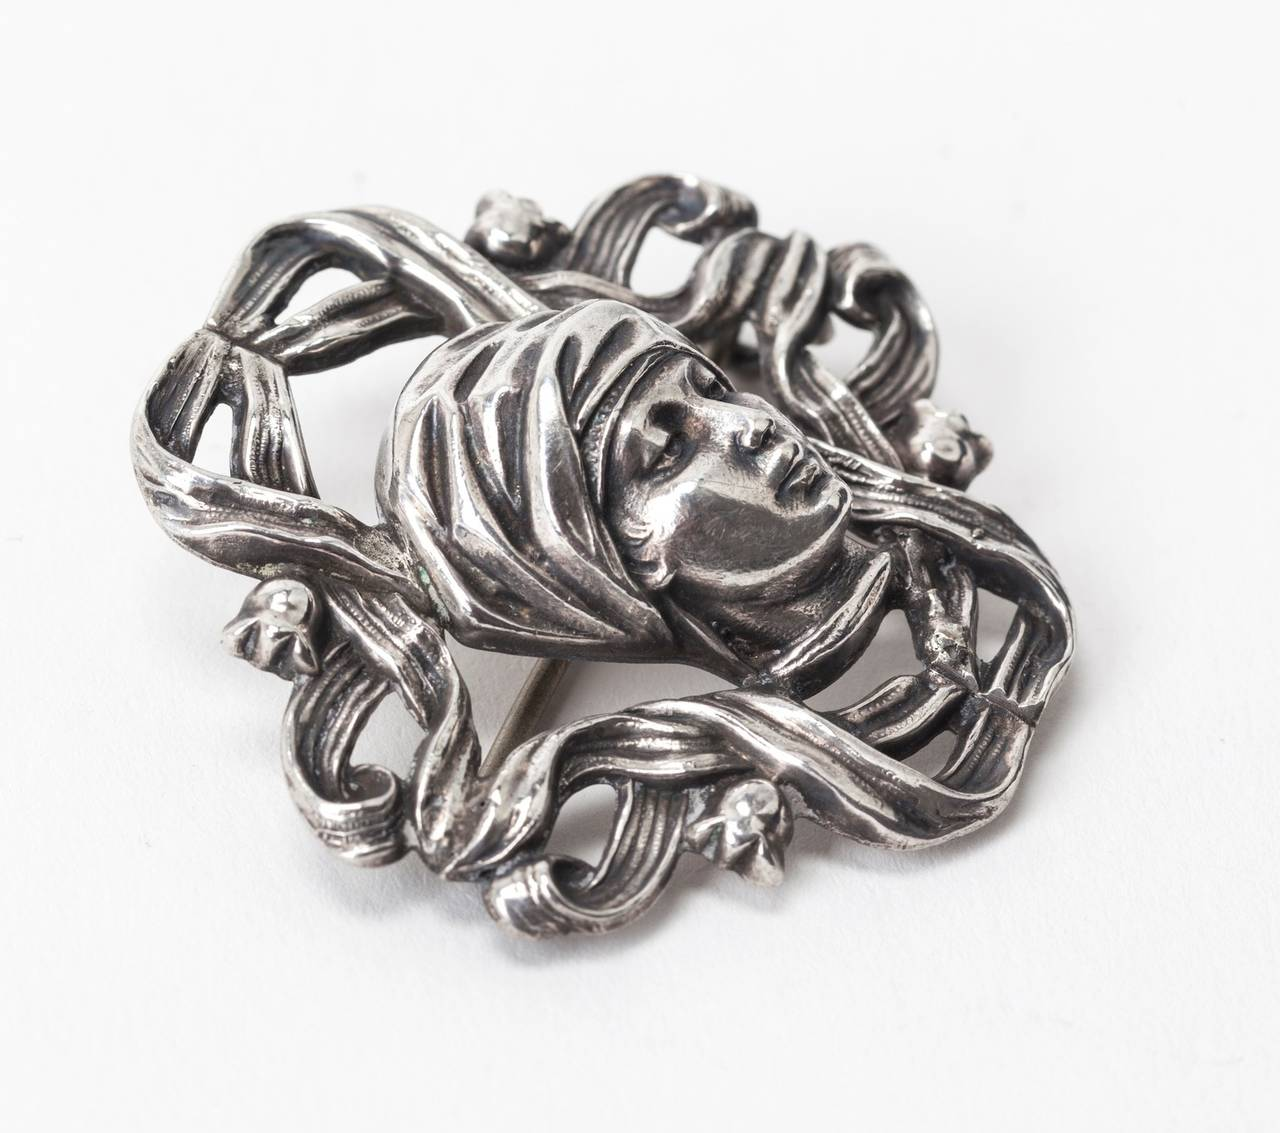 Art Nouveau sterling high relief brooch of a maiden with head wrap. Whiplash ribbons of silver form the frame capped in tiny lily of the valley buds. Highly unusual subject matter. Most Art Nouveau material is more romantic and feminine as opposed